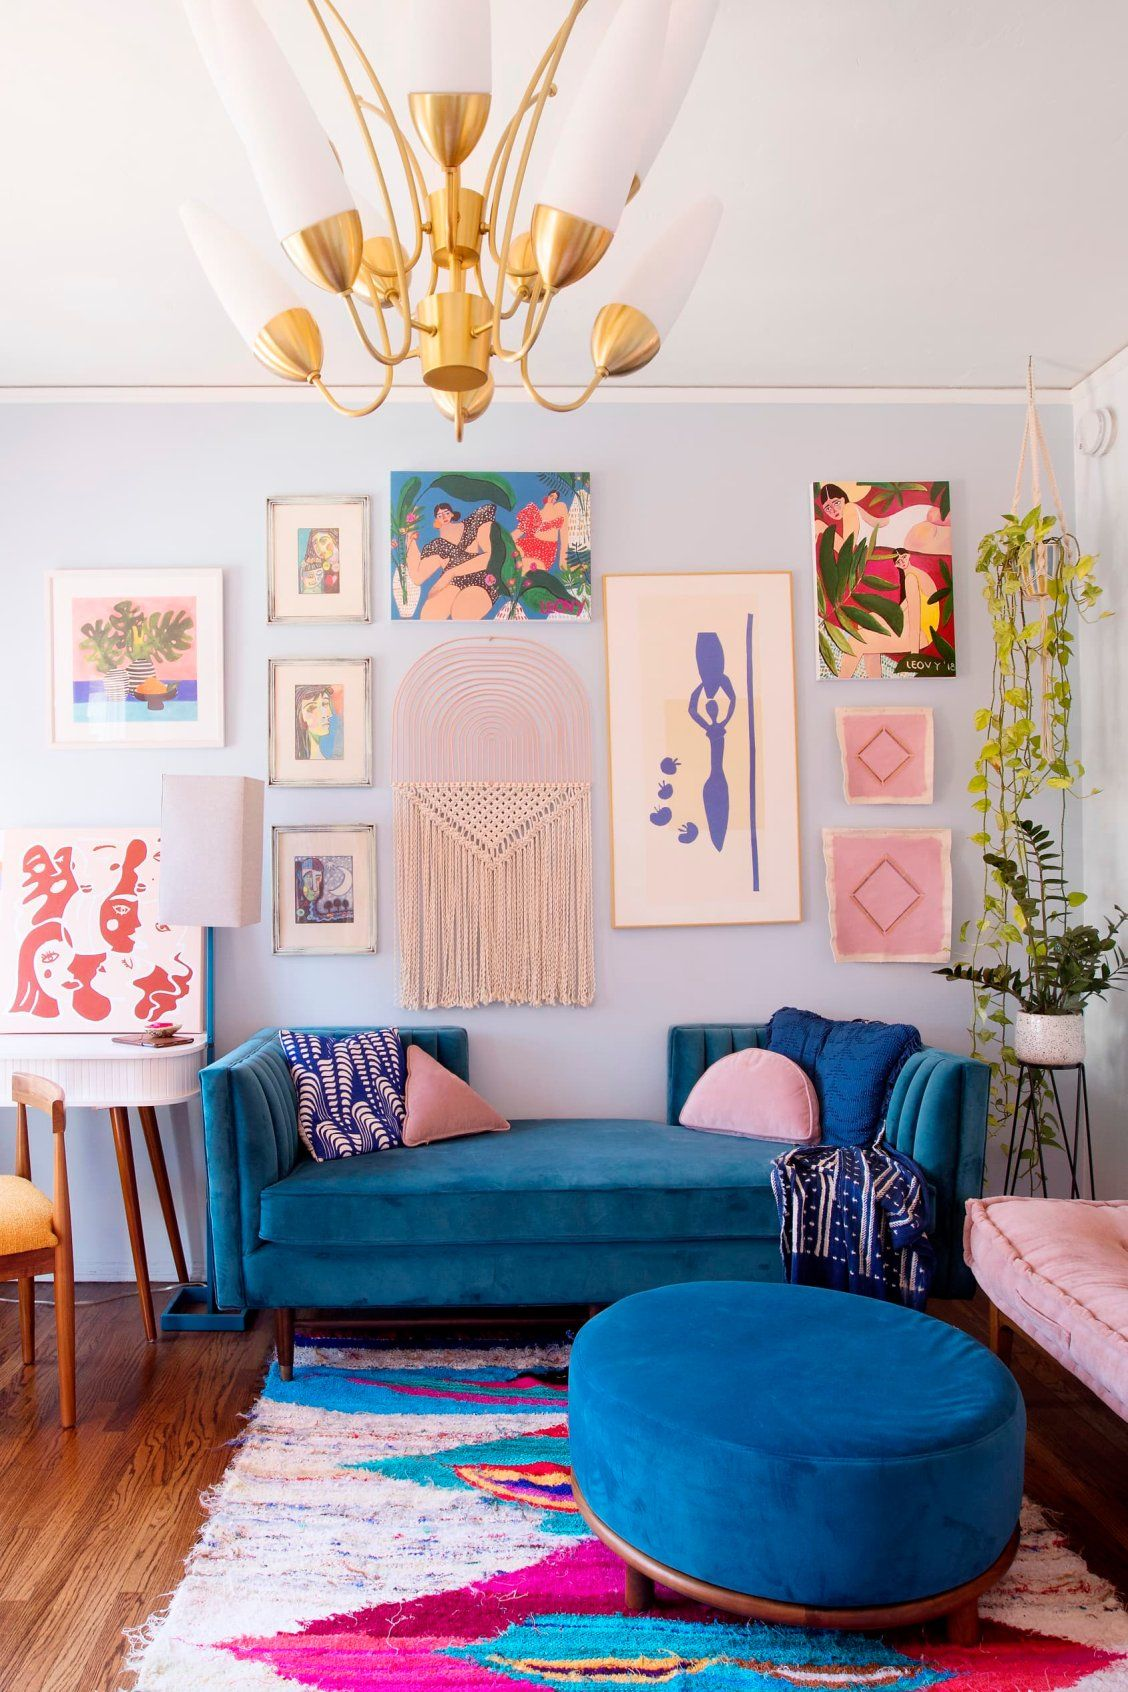 This cool California rental is bursting with color and DIY inspiration. #rental #diy #homecolorpalette #gallerywall #colorpalette